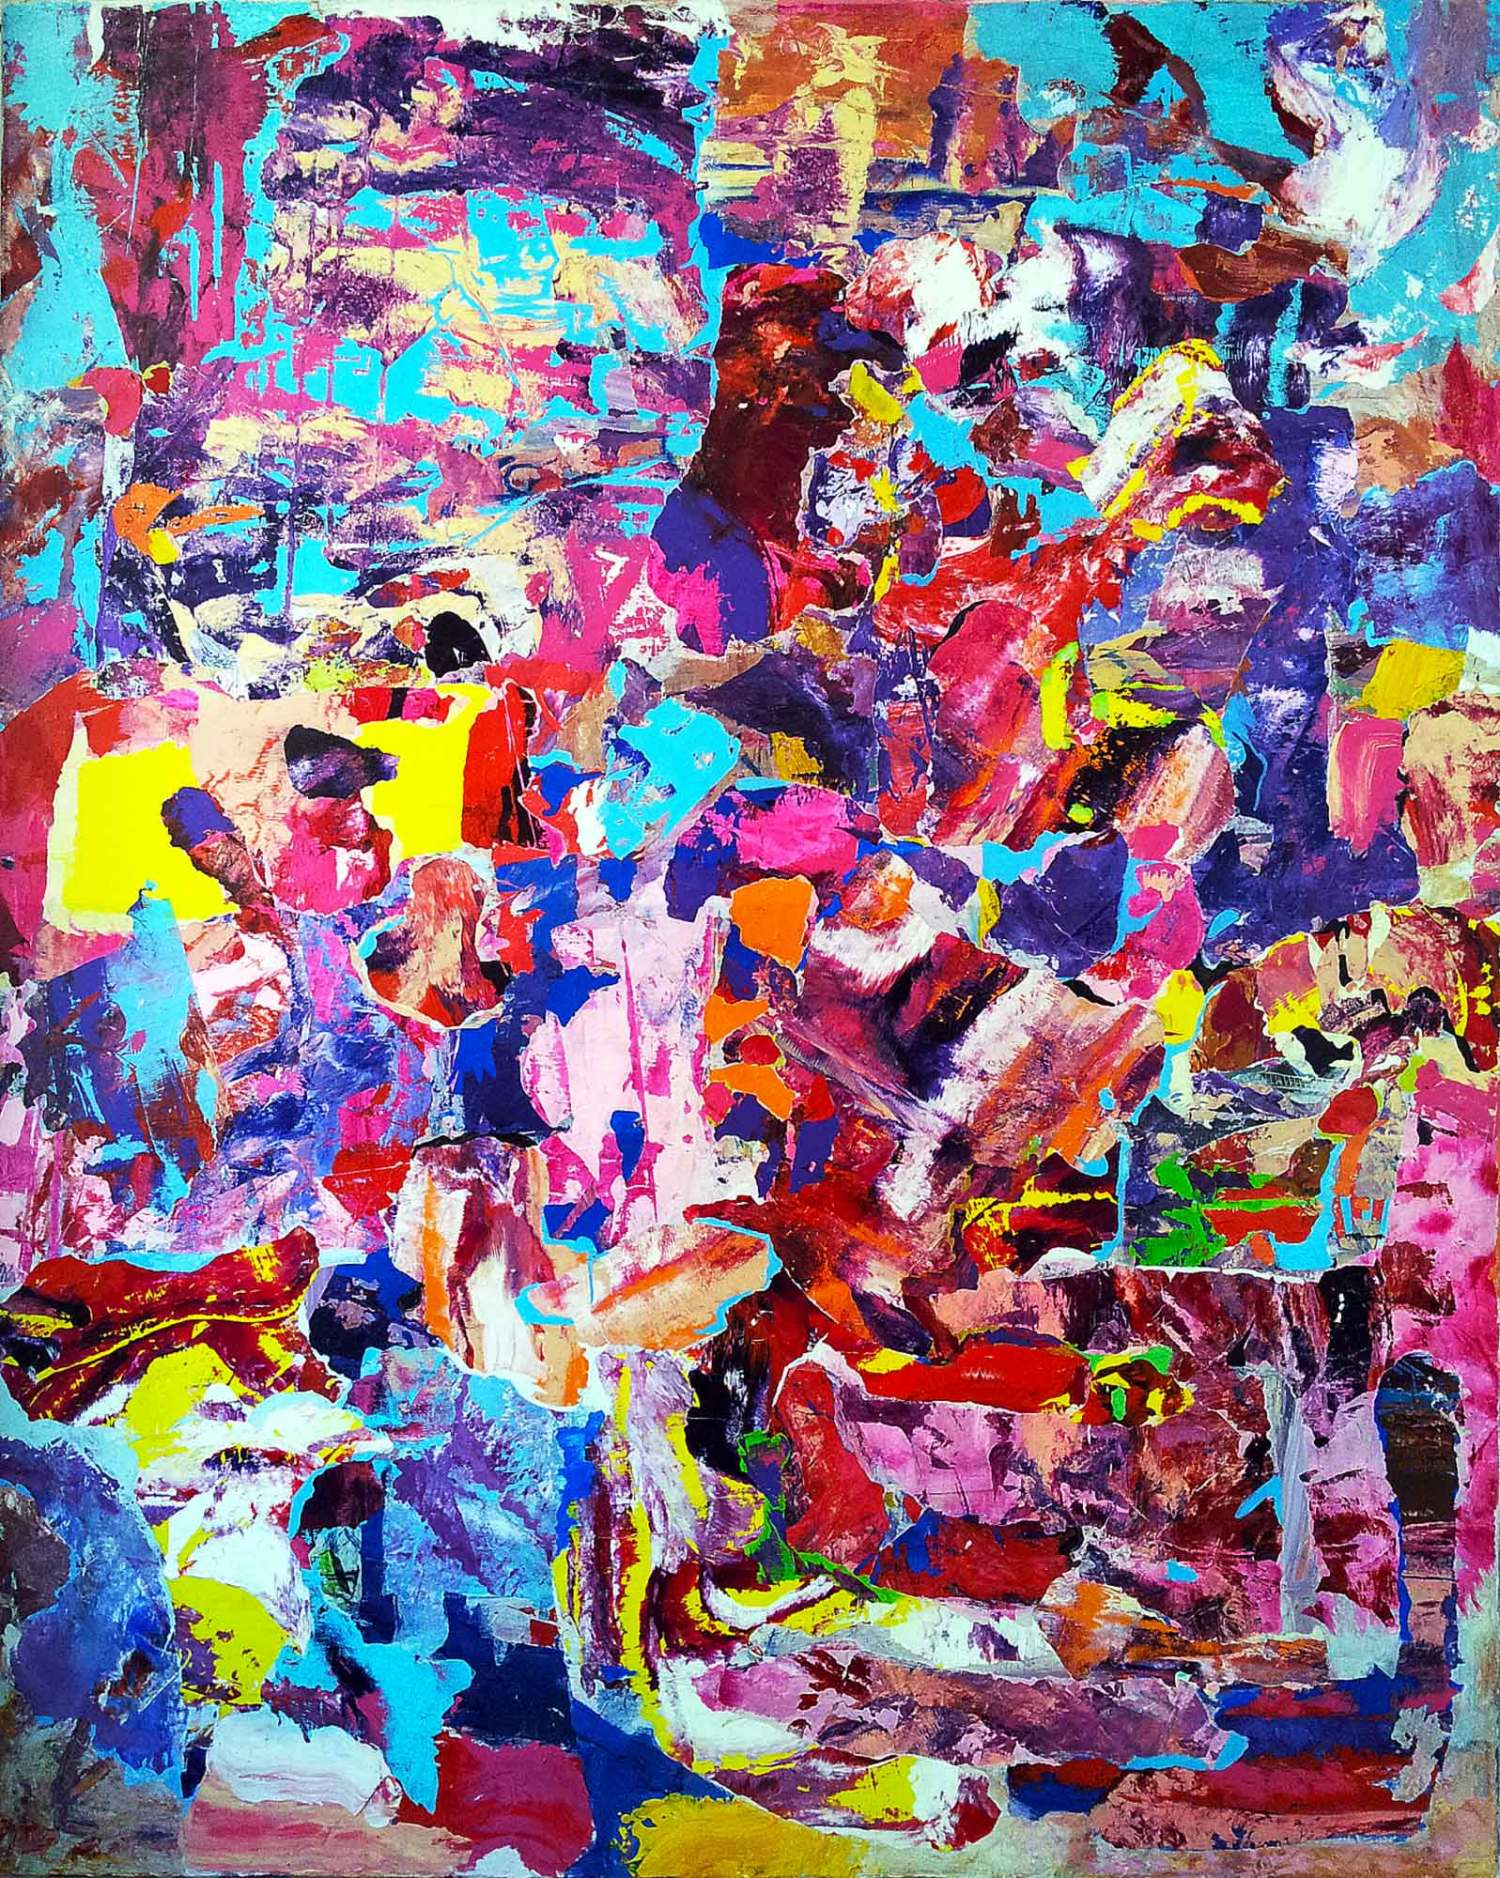 no room for squares - 150 x 120 cm - acrylic, markers and collage on canvas - 2015